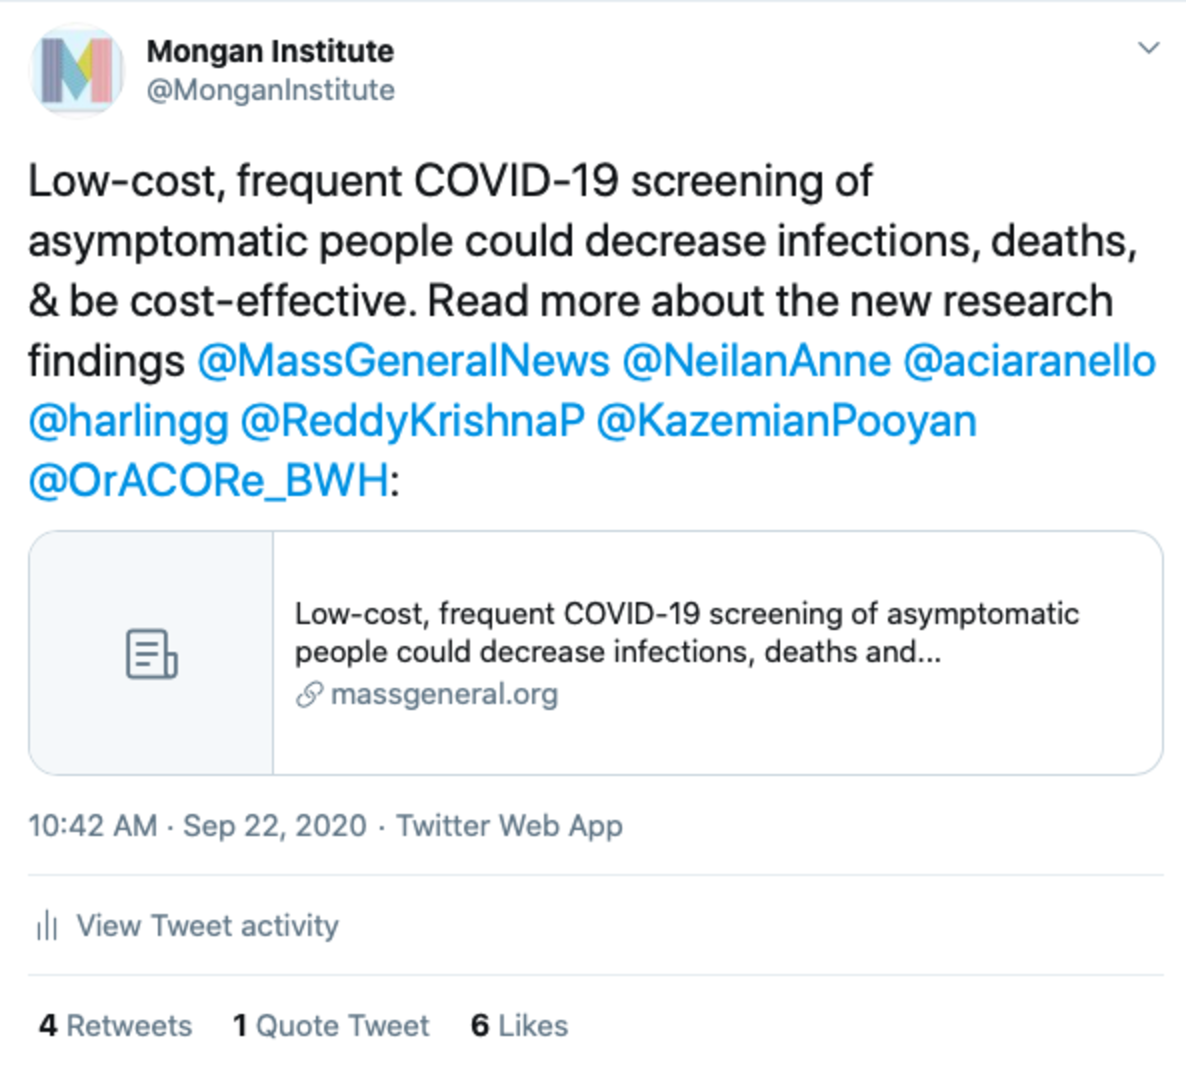 Tweet that reads: Low-cost, frequent COVID-19 screening of asymptomatic people could decrease infections, deaths, & be cost-effective. Read more about the new research findings @MassGeneralNews @NeilanAnne @aciaranello @harlingg @ReddyKrishnaP @KazemianPooyan @OrACORe_BWH